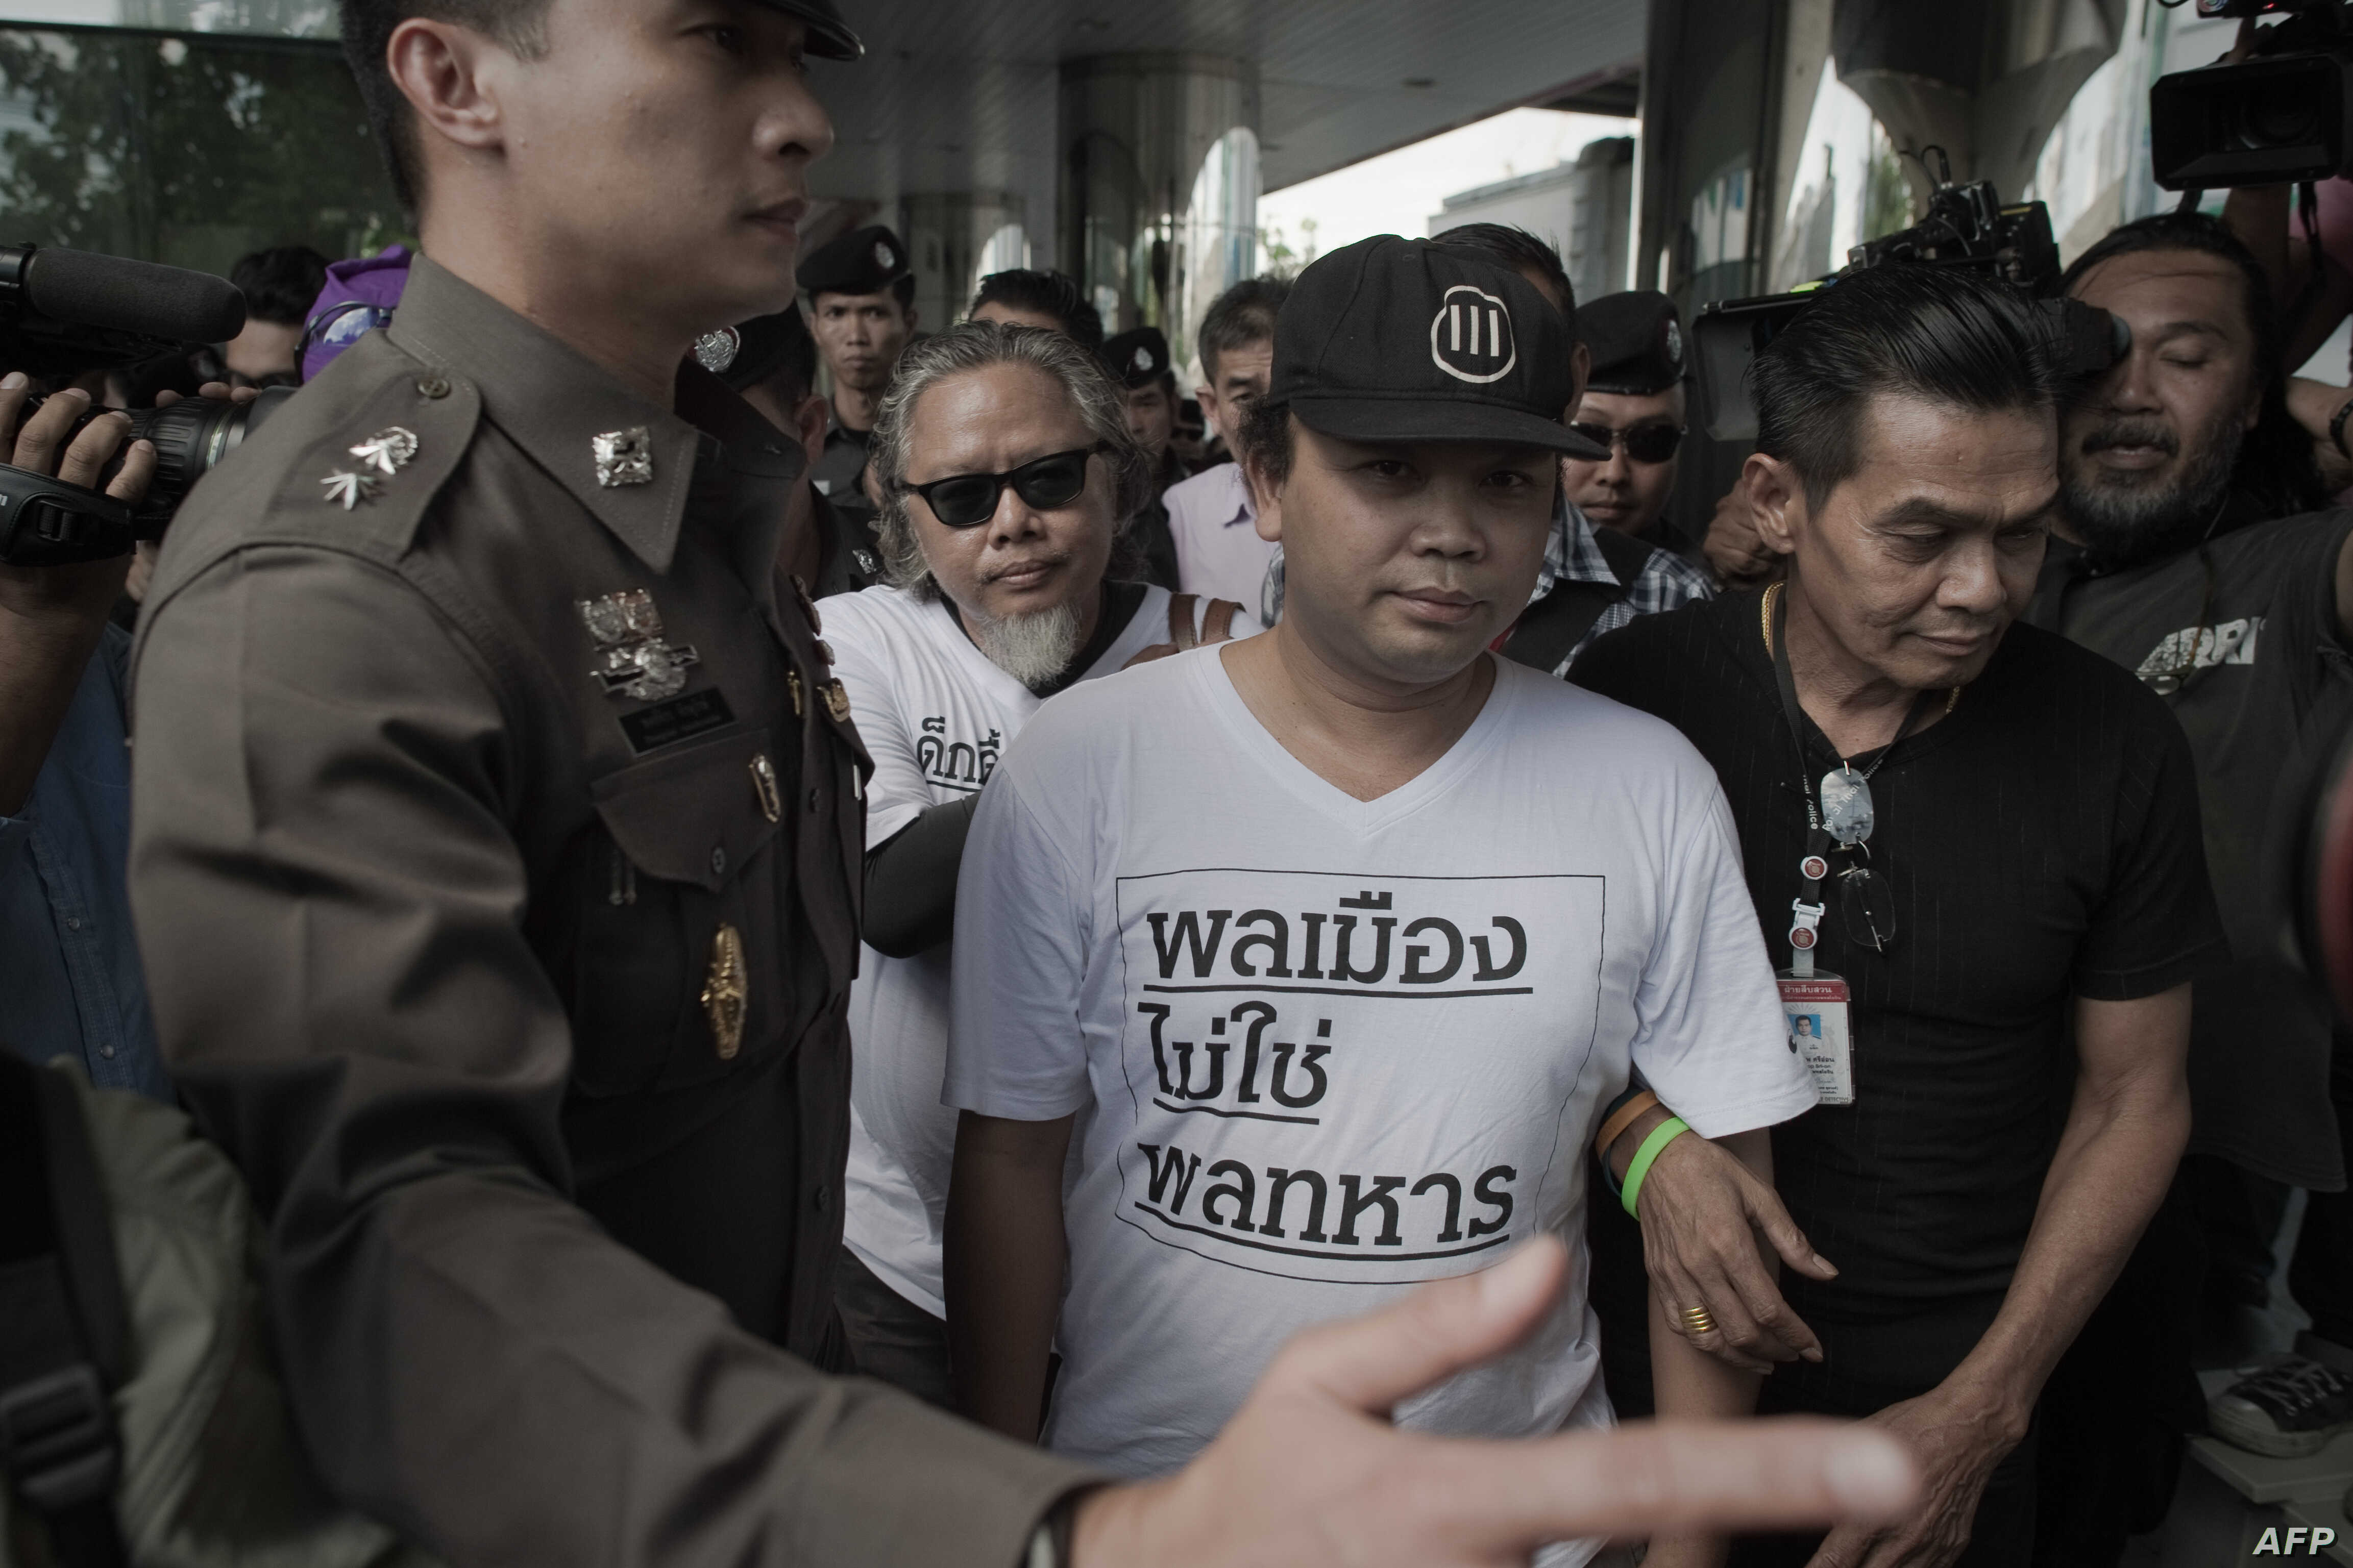 Two demonstrators (in white t-shirts) are arrested by police officers during a rally in Bangkok on May 22, 2015.